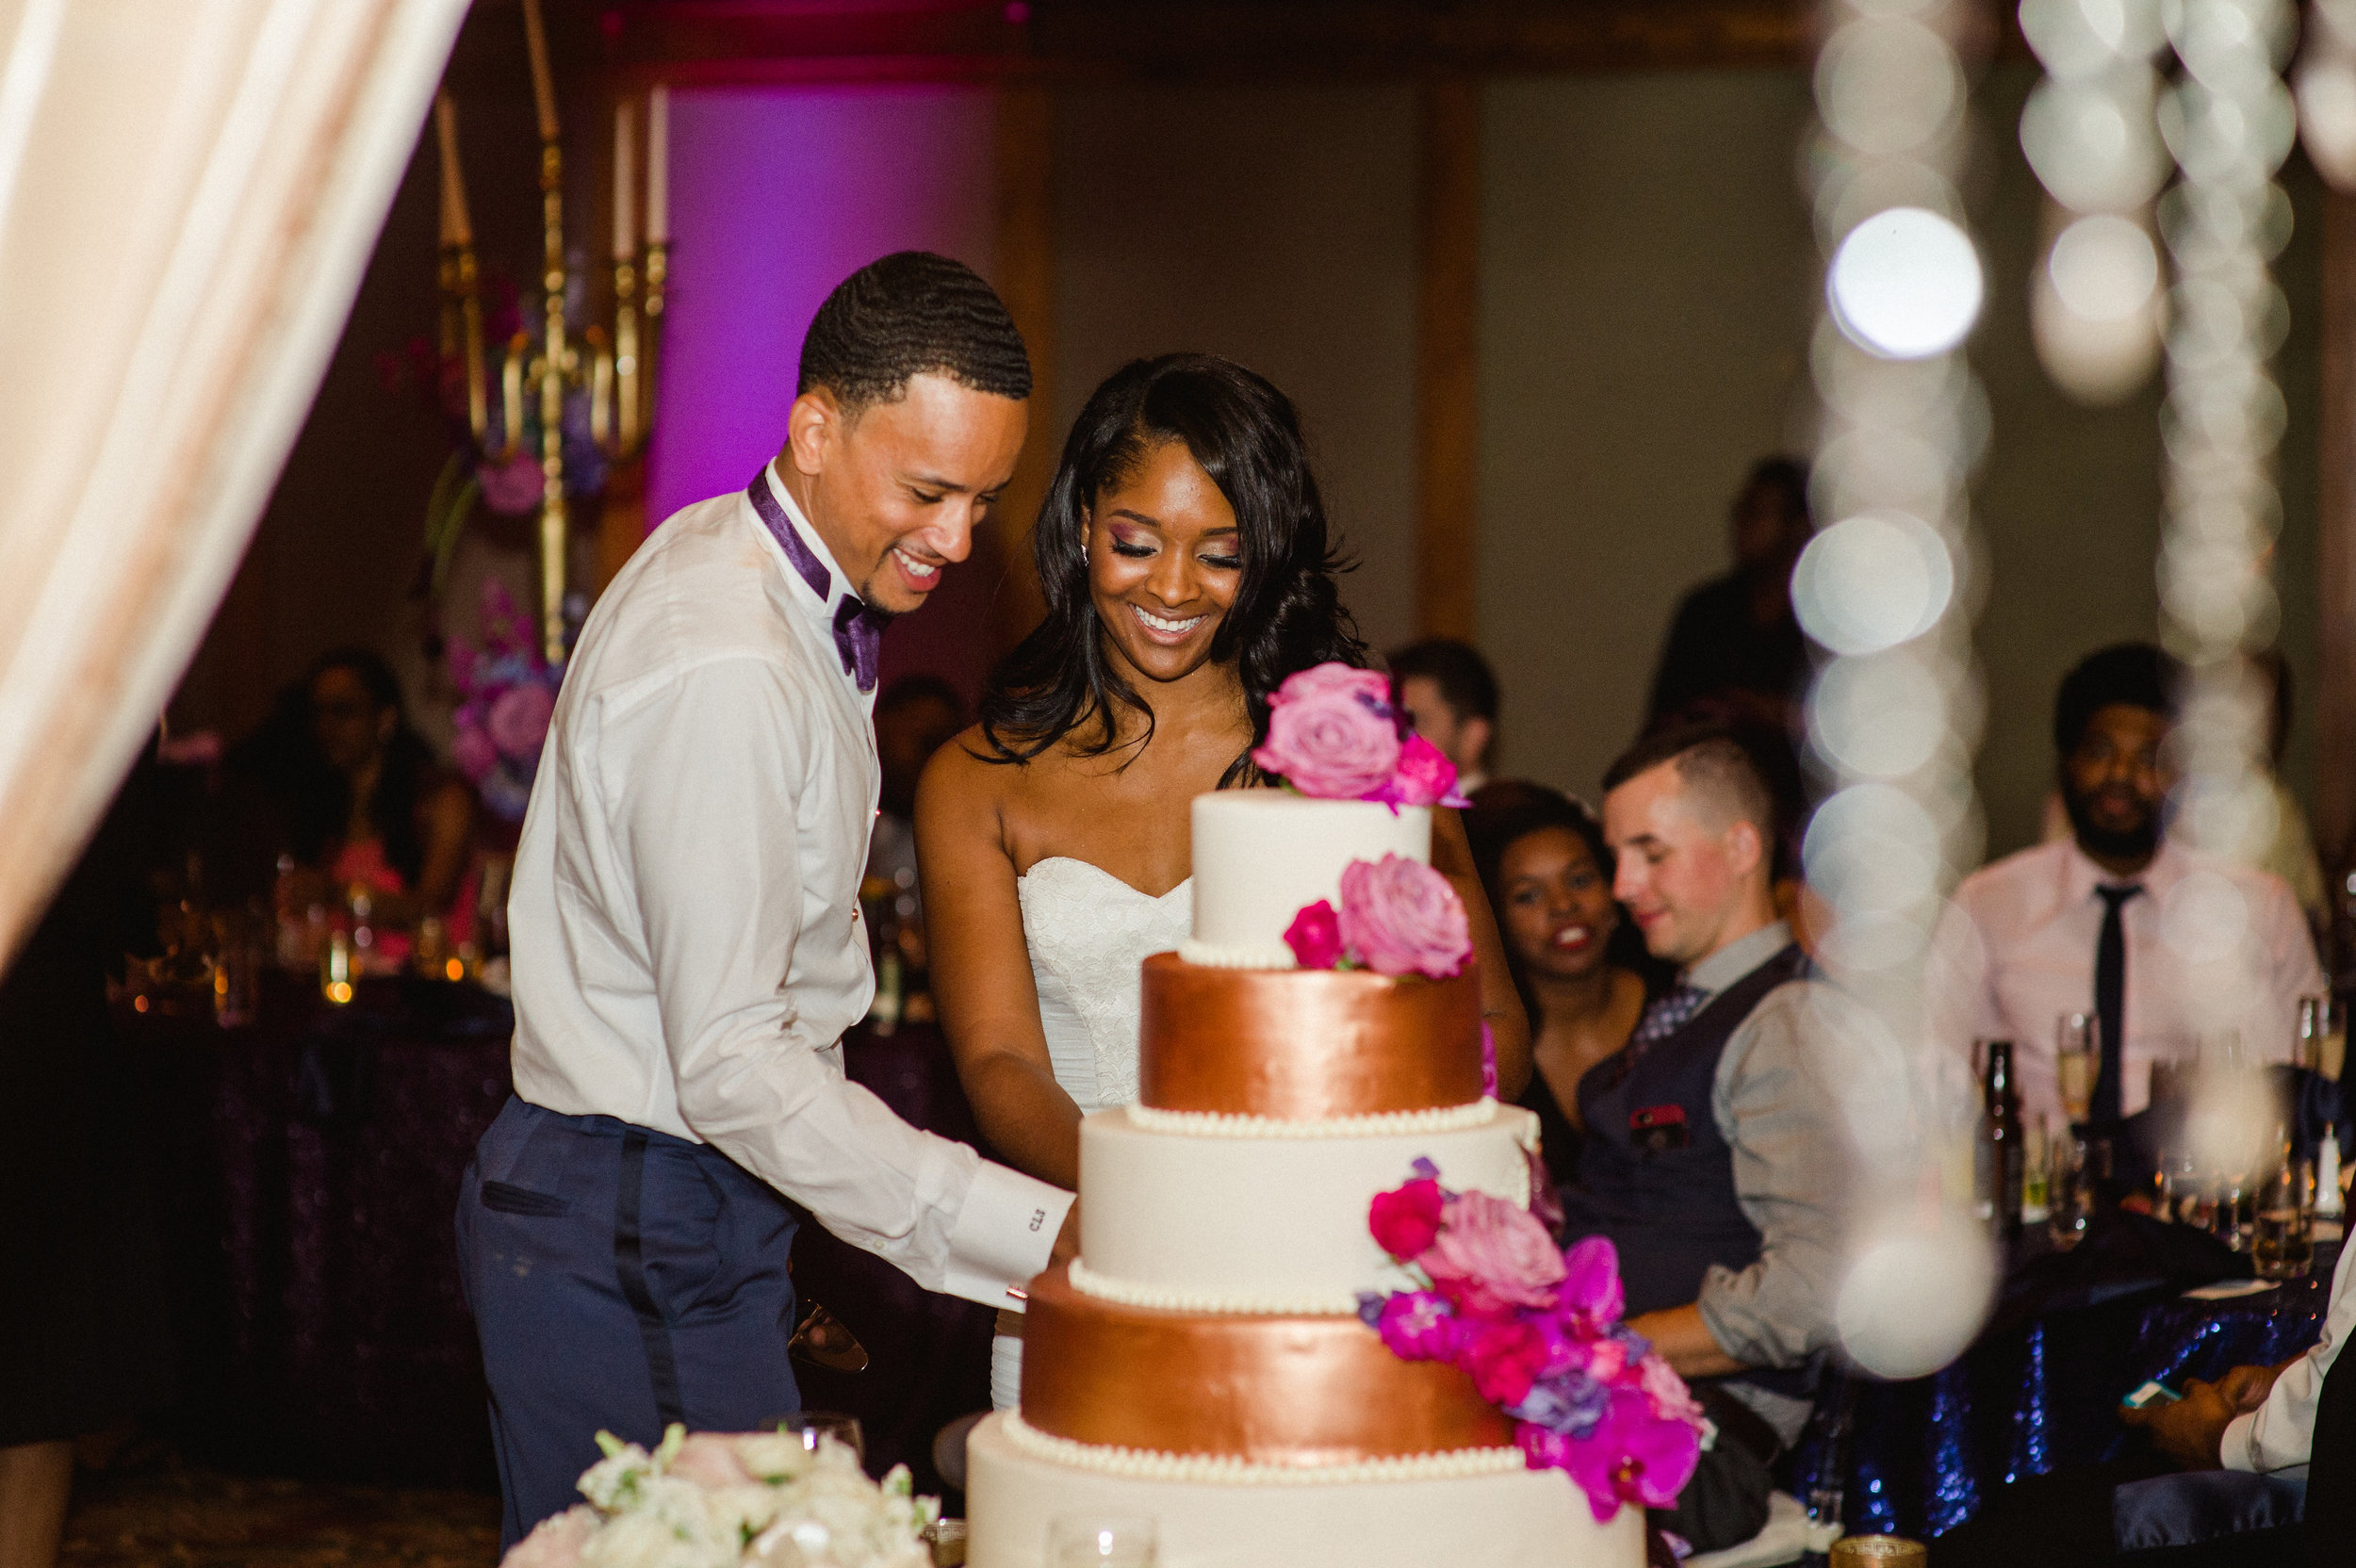 imani&chris|wedding|reception-295.jpg